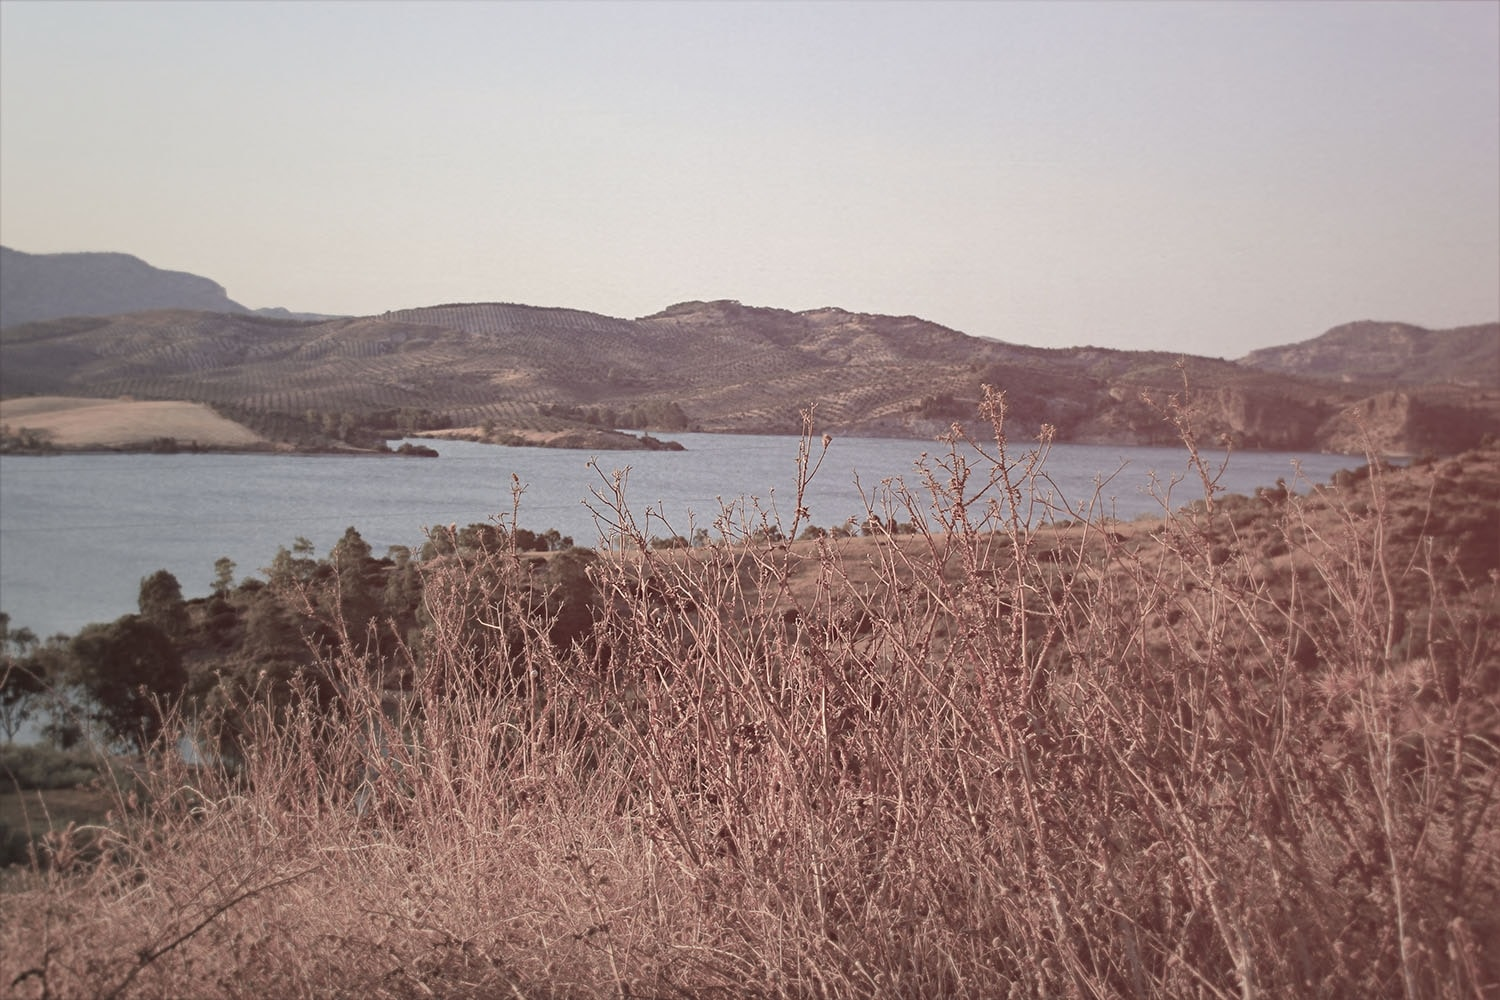 A faded shot of a body of water with dry grass in the foreground